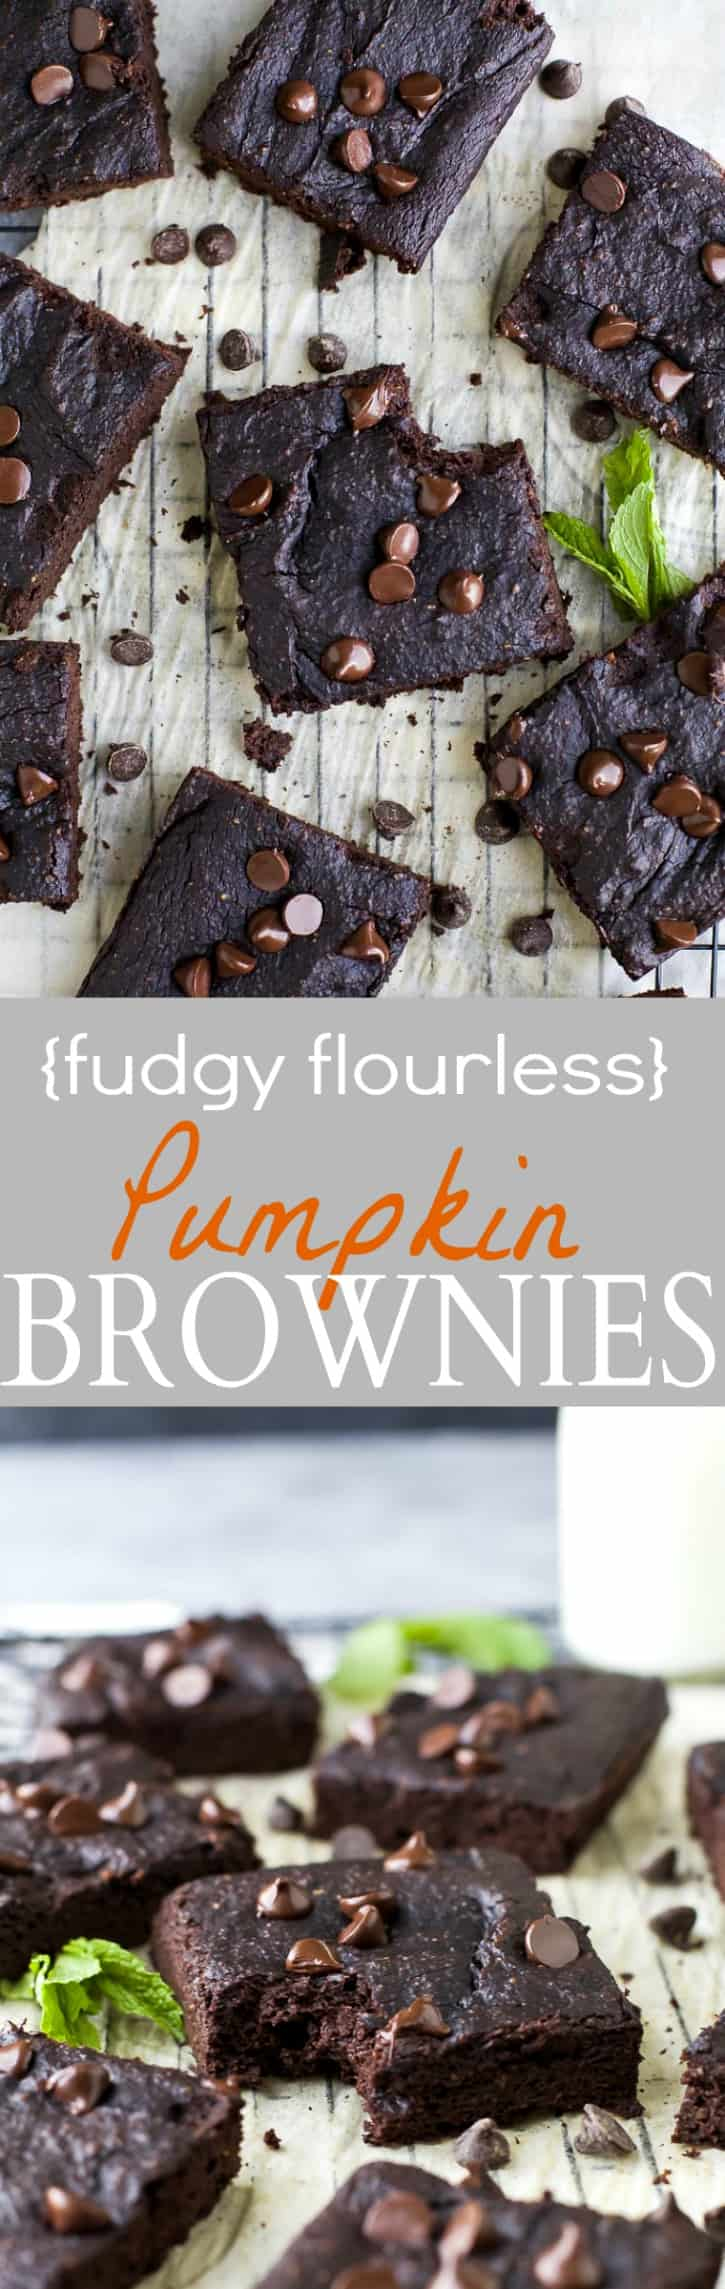 Fudgy Flourless Pumpkin Brownies made with maple syrup, pumpkin puree, almond butter, and cocoa powder! These brownies are so fudgy you'll be shocked! It's the perfect guilt free dessert recipe this holiday season! | gluten free recipes